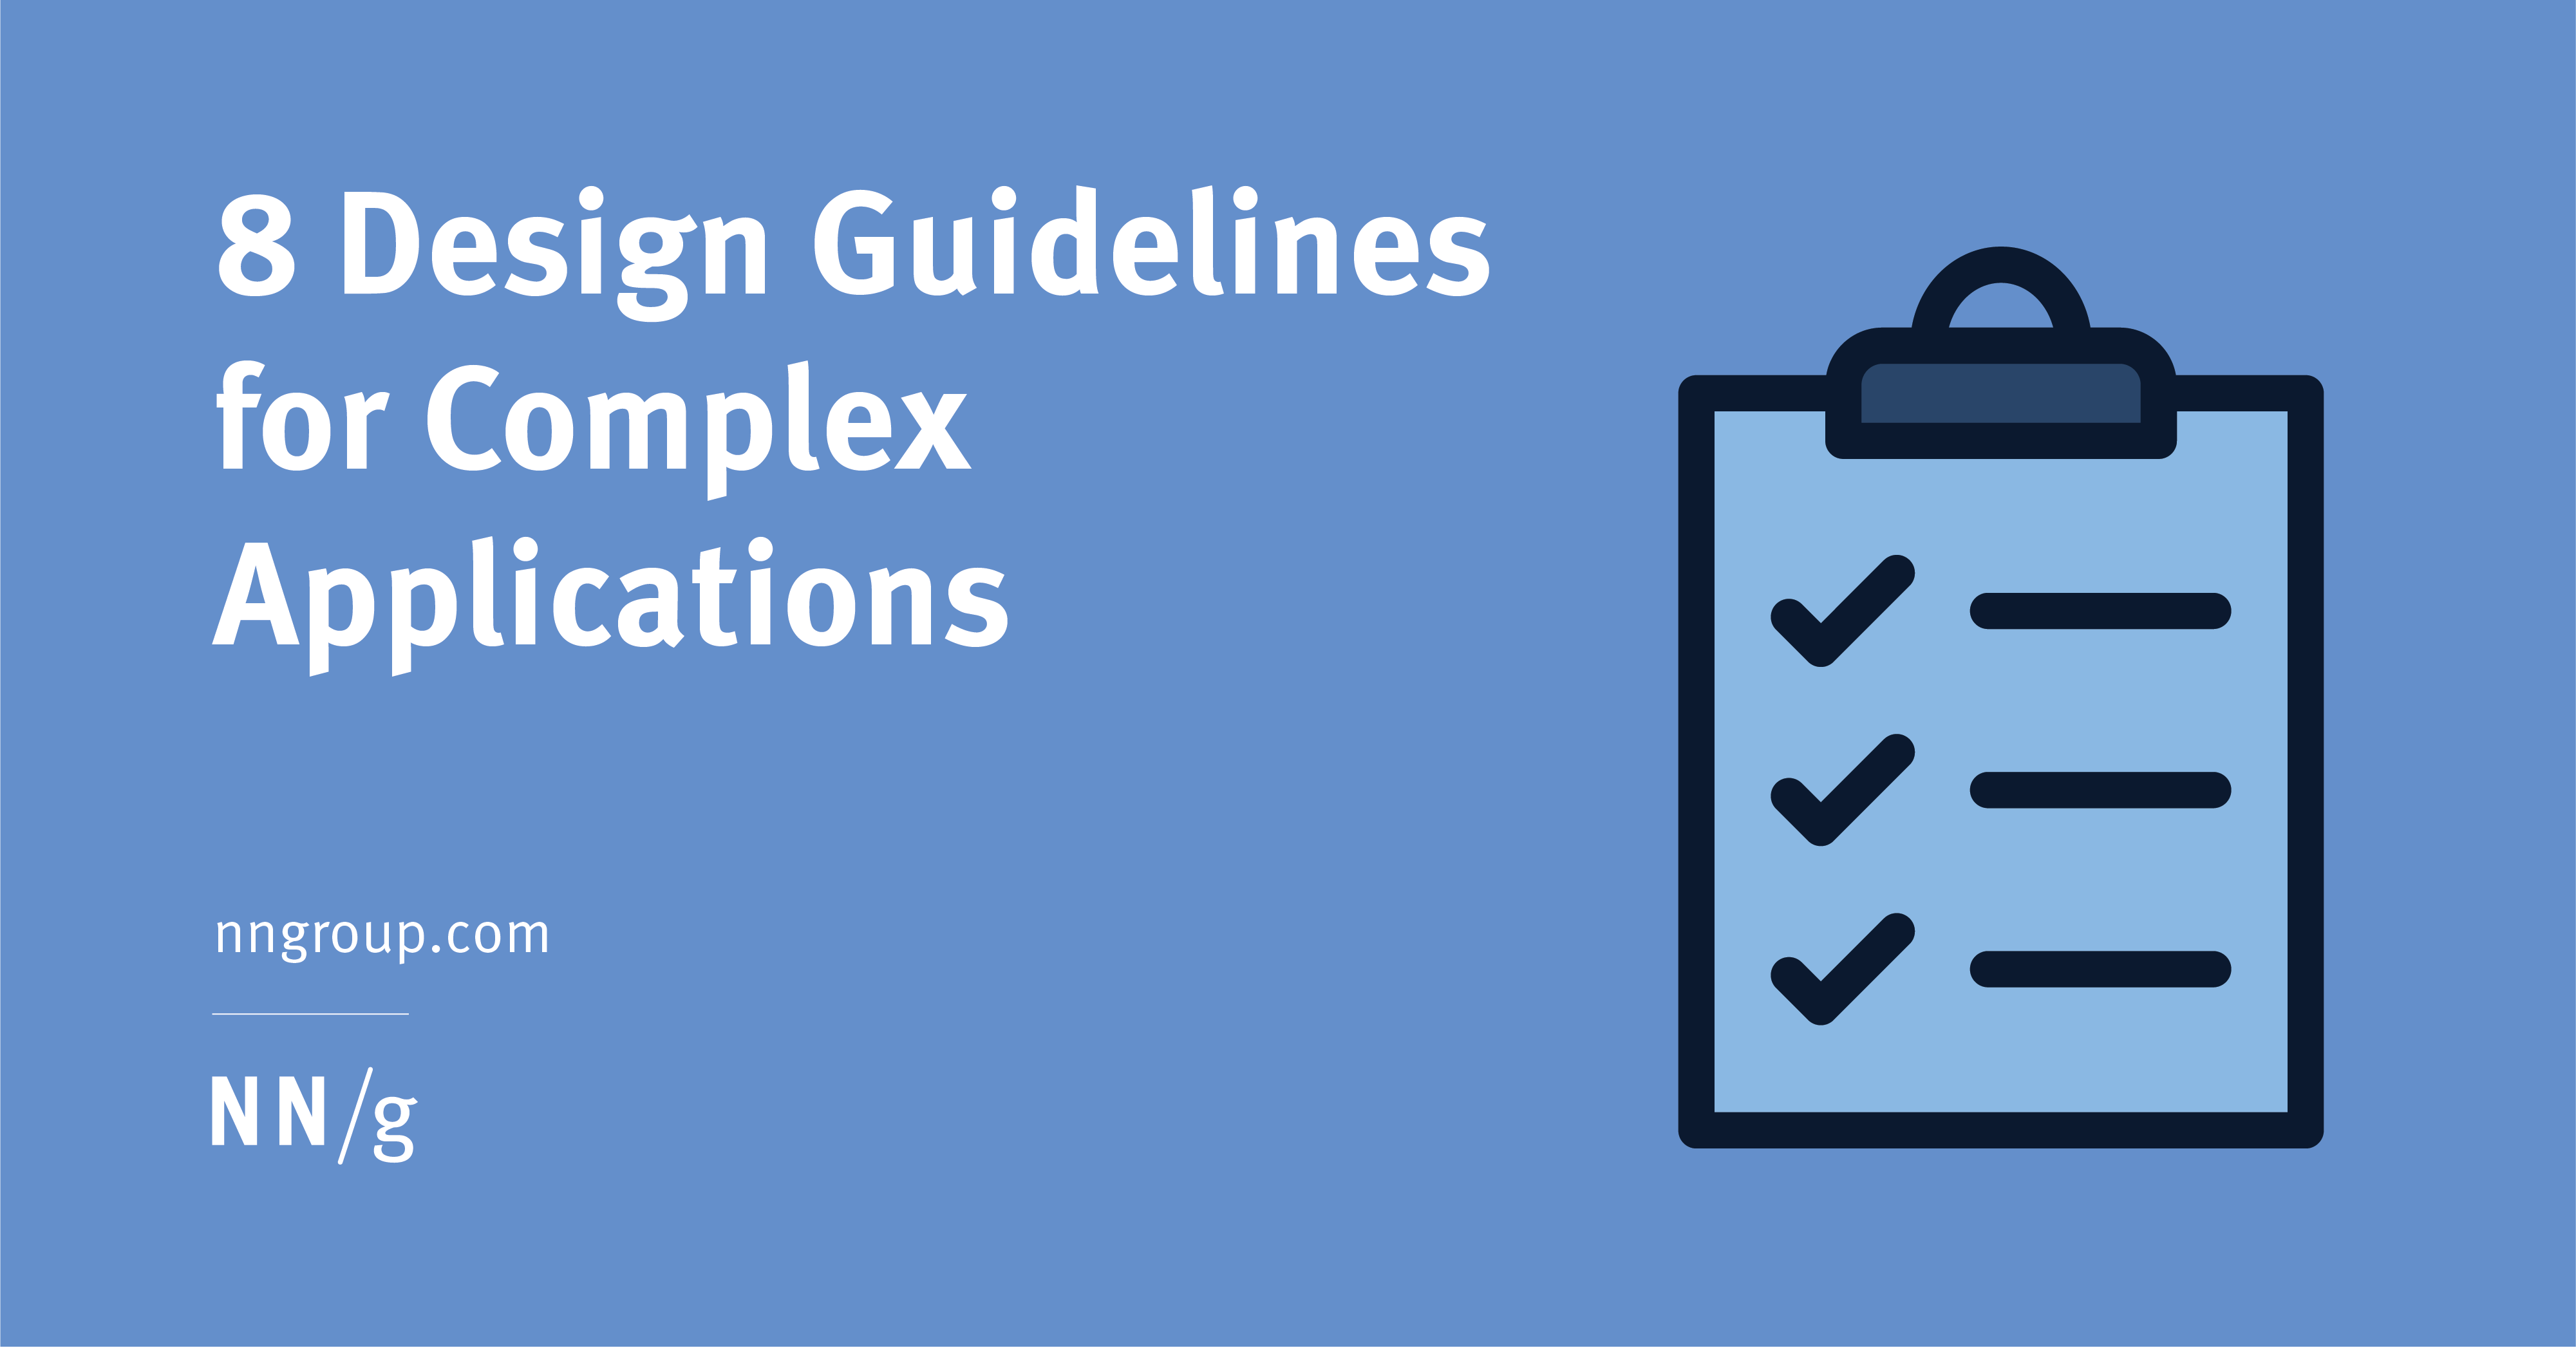 8 Design Guidelines for Complex Applications